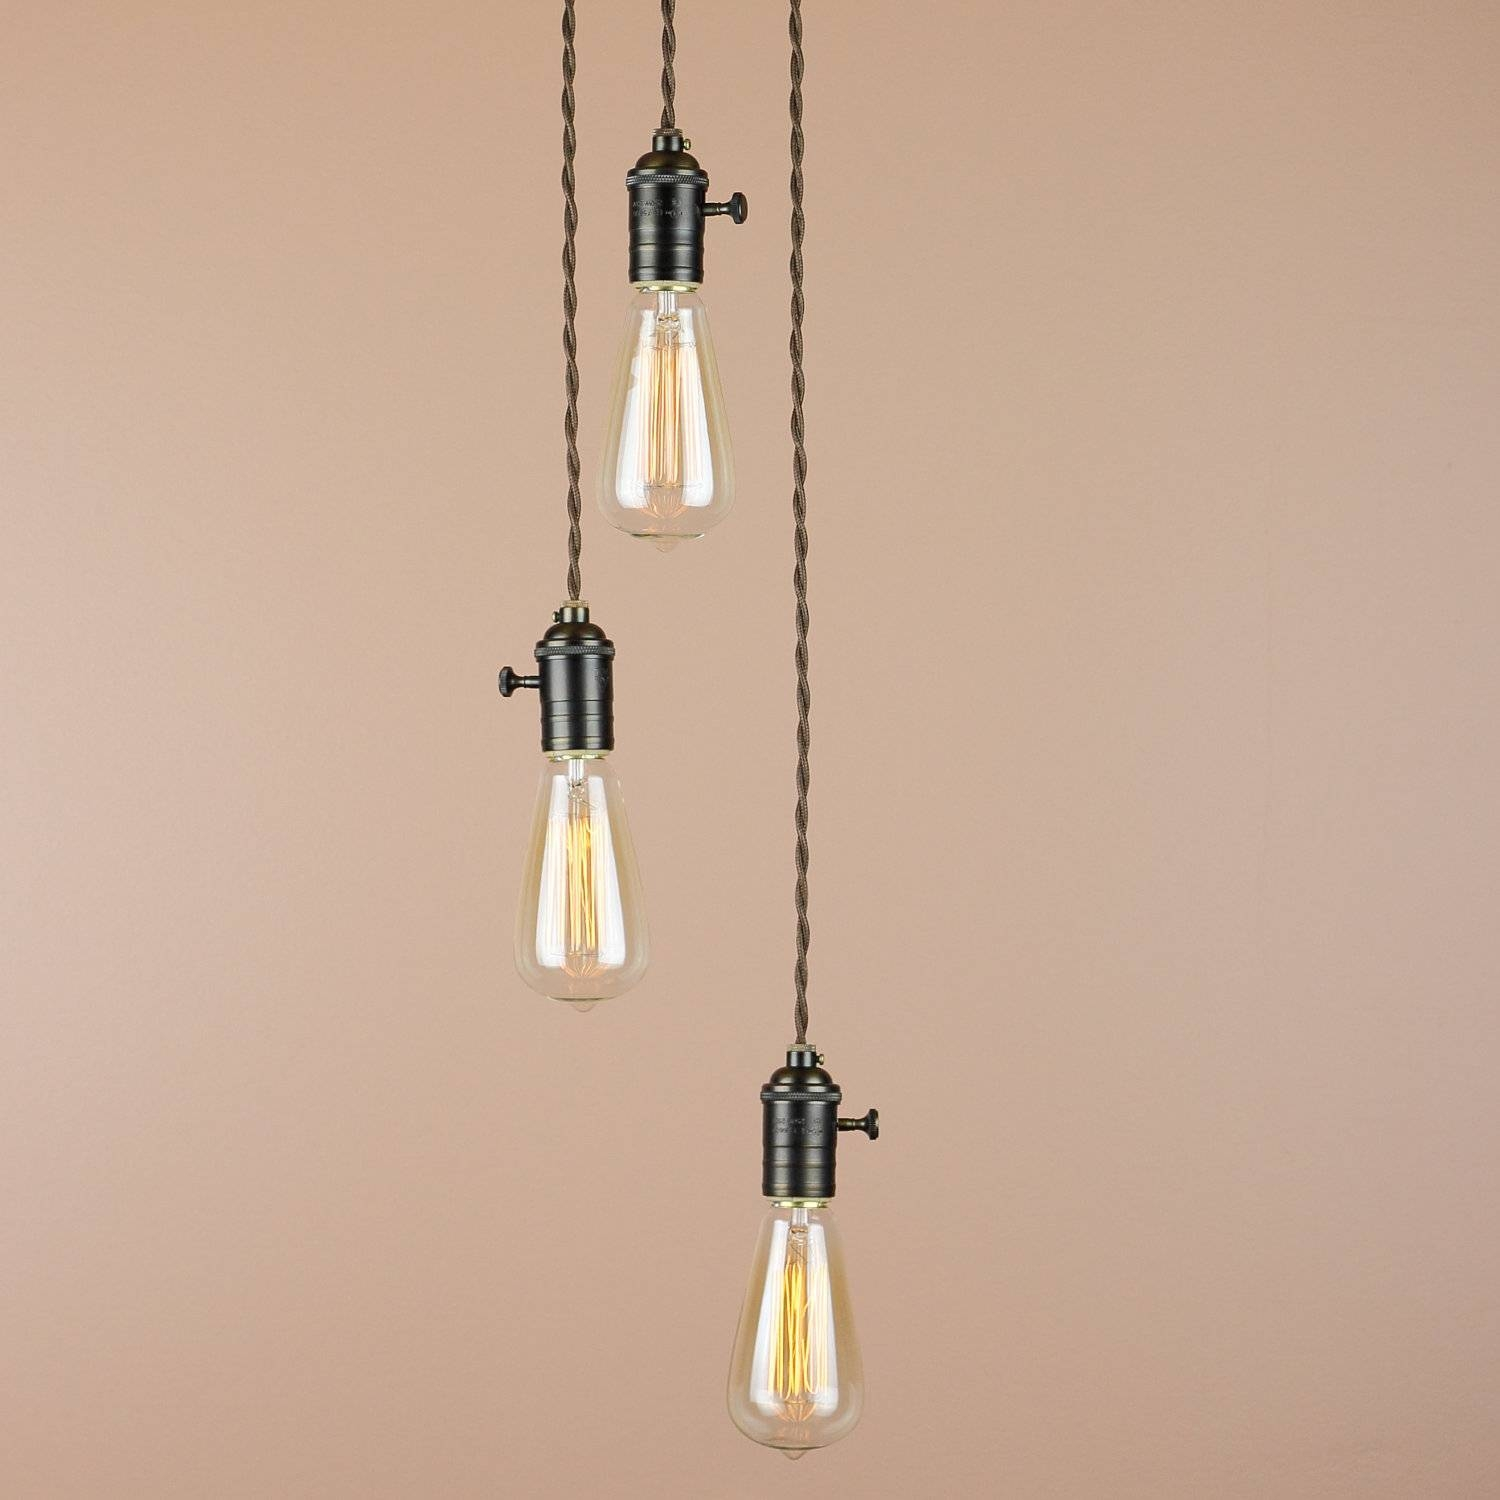 Industrial Style Kitchen Pendant Lights ~ Picgit throughout Exposed Bulb Pendant Track Lighting (Image 13 of 15)